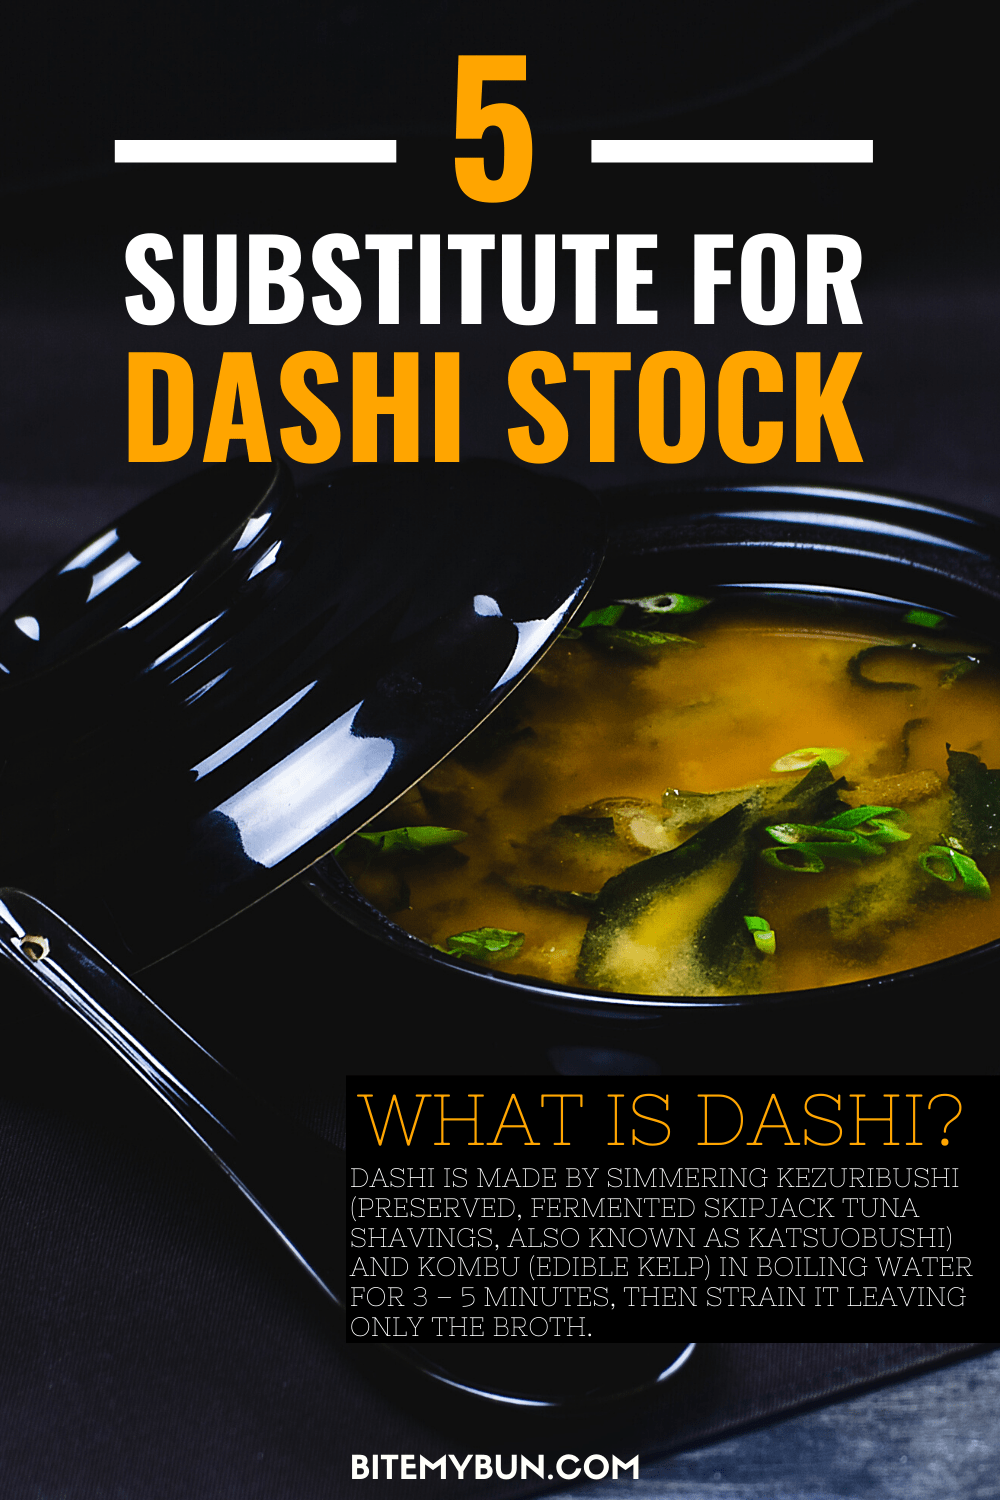 5 substitutes for your Dashi stock | Powder, Kombu & Bonito alternatives